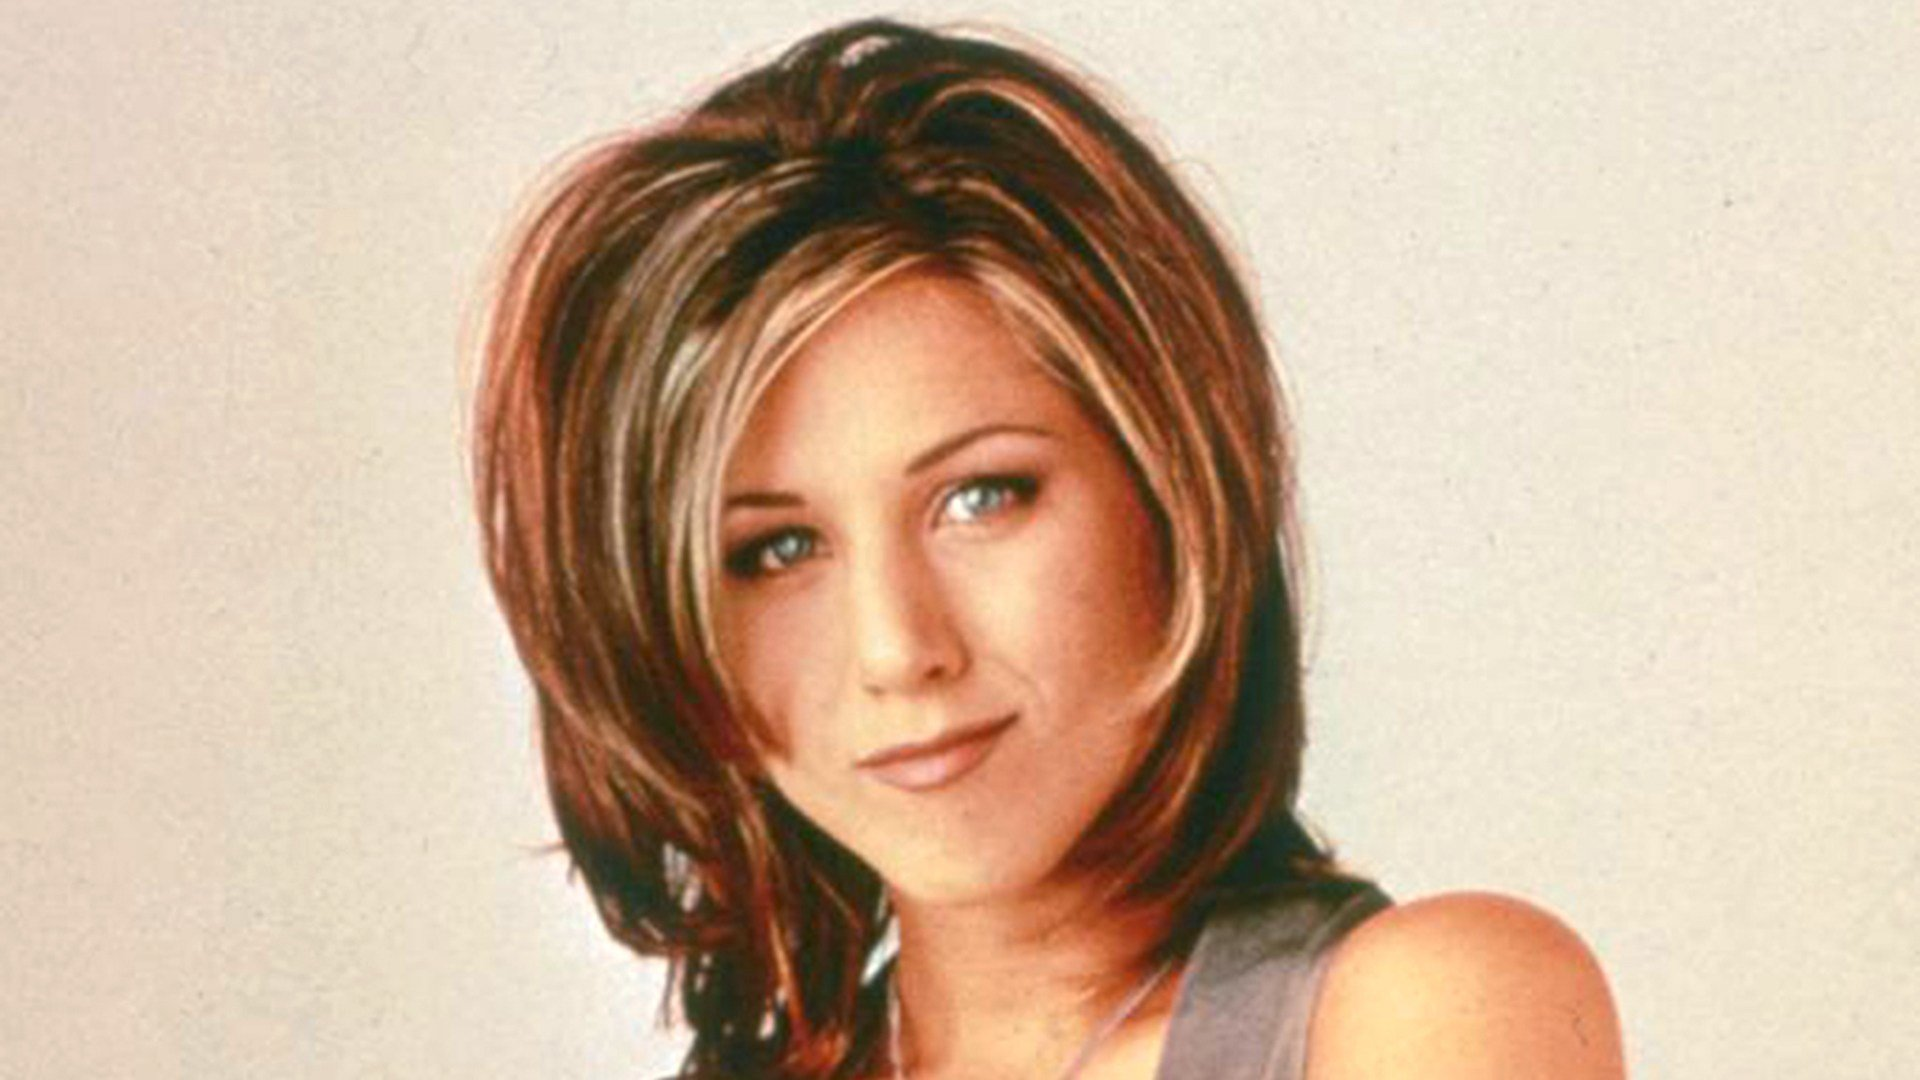 The Best Jennifer Aniston Reveals Why She Hated The Rachel Haircut Pictures